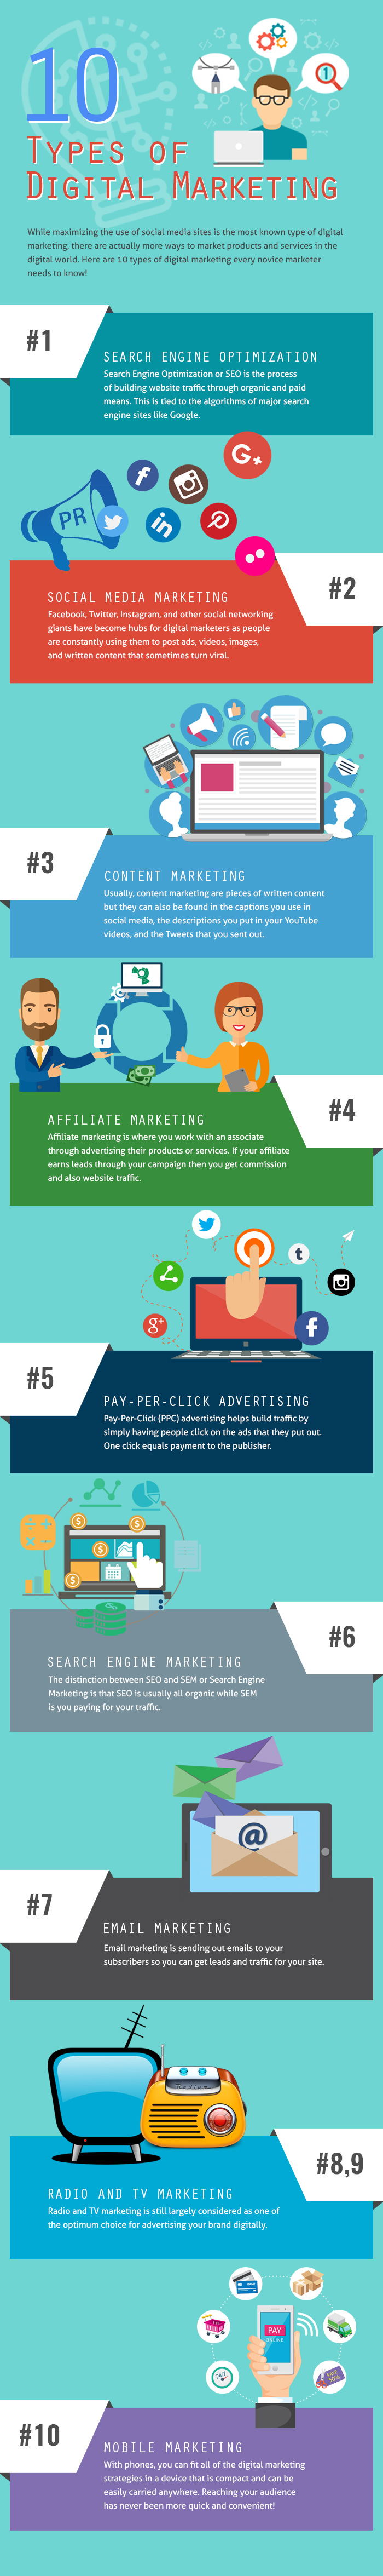 10 Types of Digital Marketing - Redkite Digital Marketing Philippines